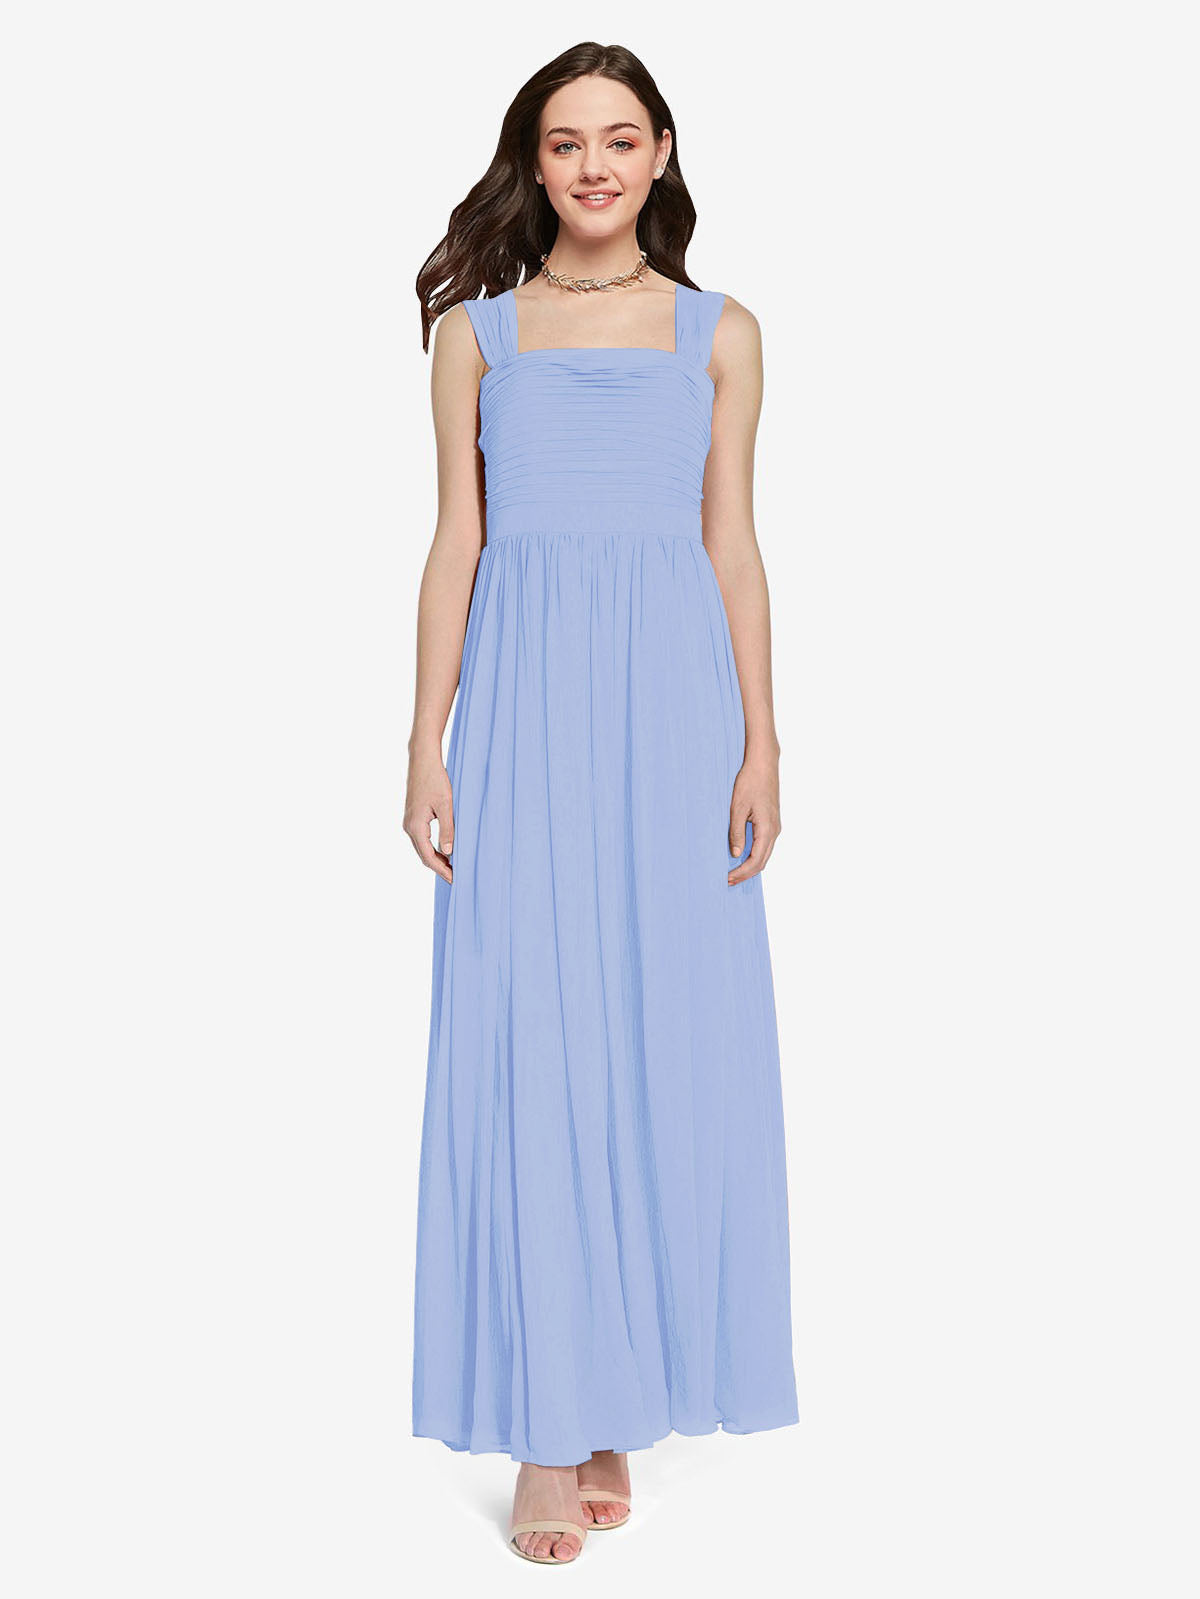 Long A-Line Square Sleeveless Lavender Chiffon Bridesmaid Dress Aldridge